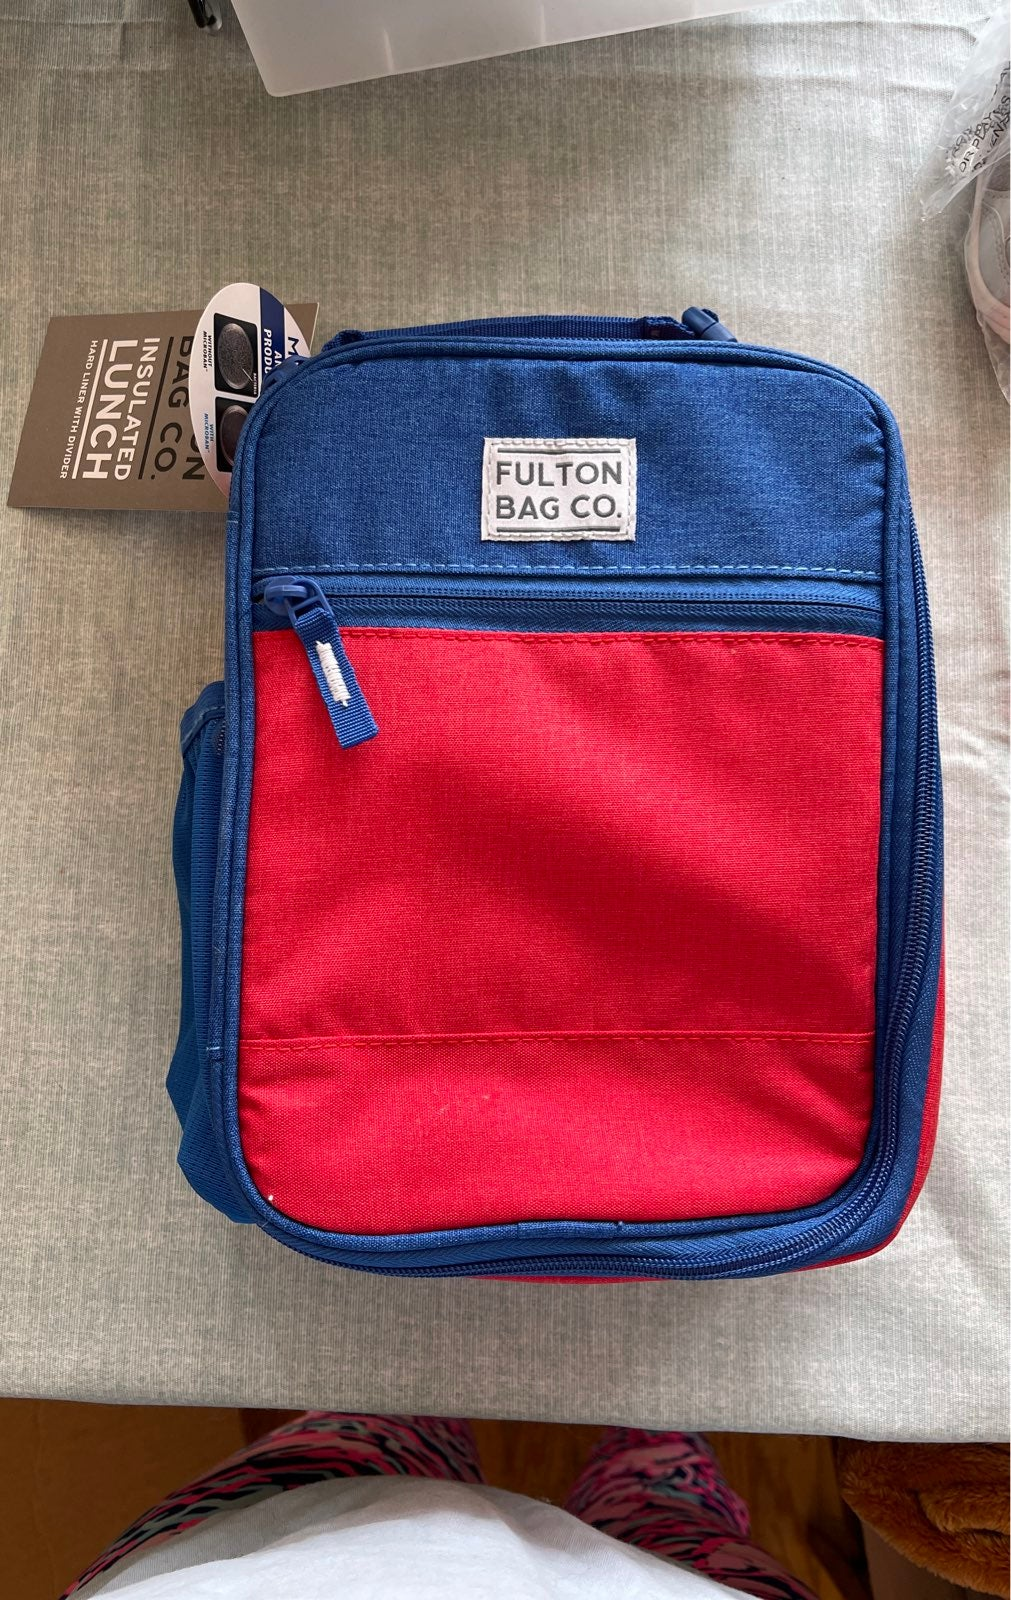 Fulton bag co. Insulated lunch box